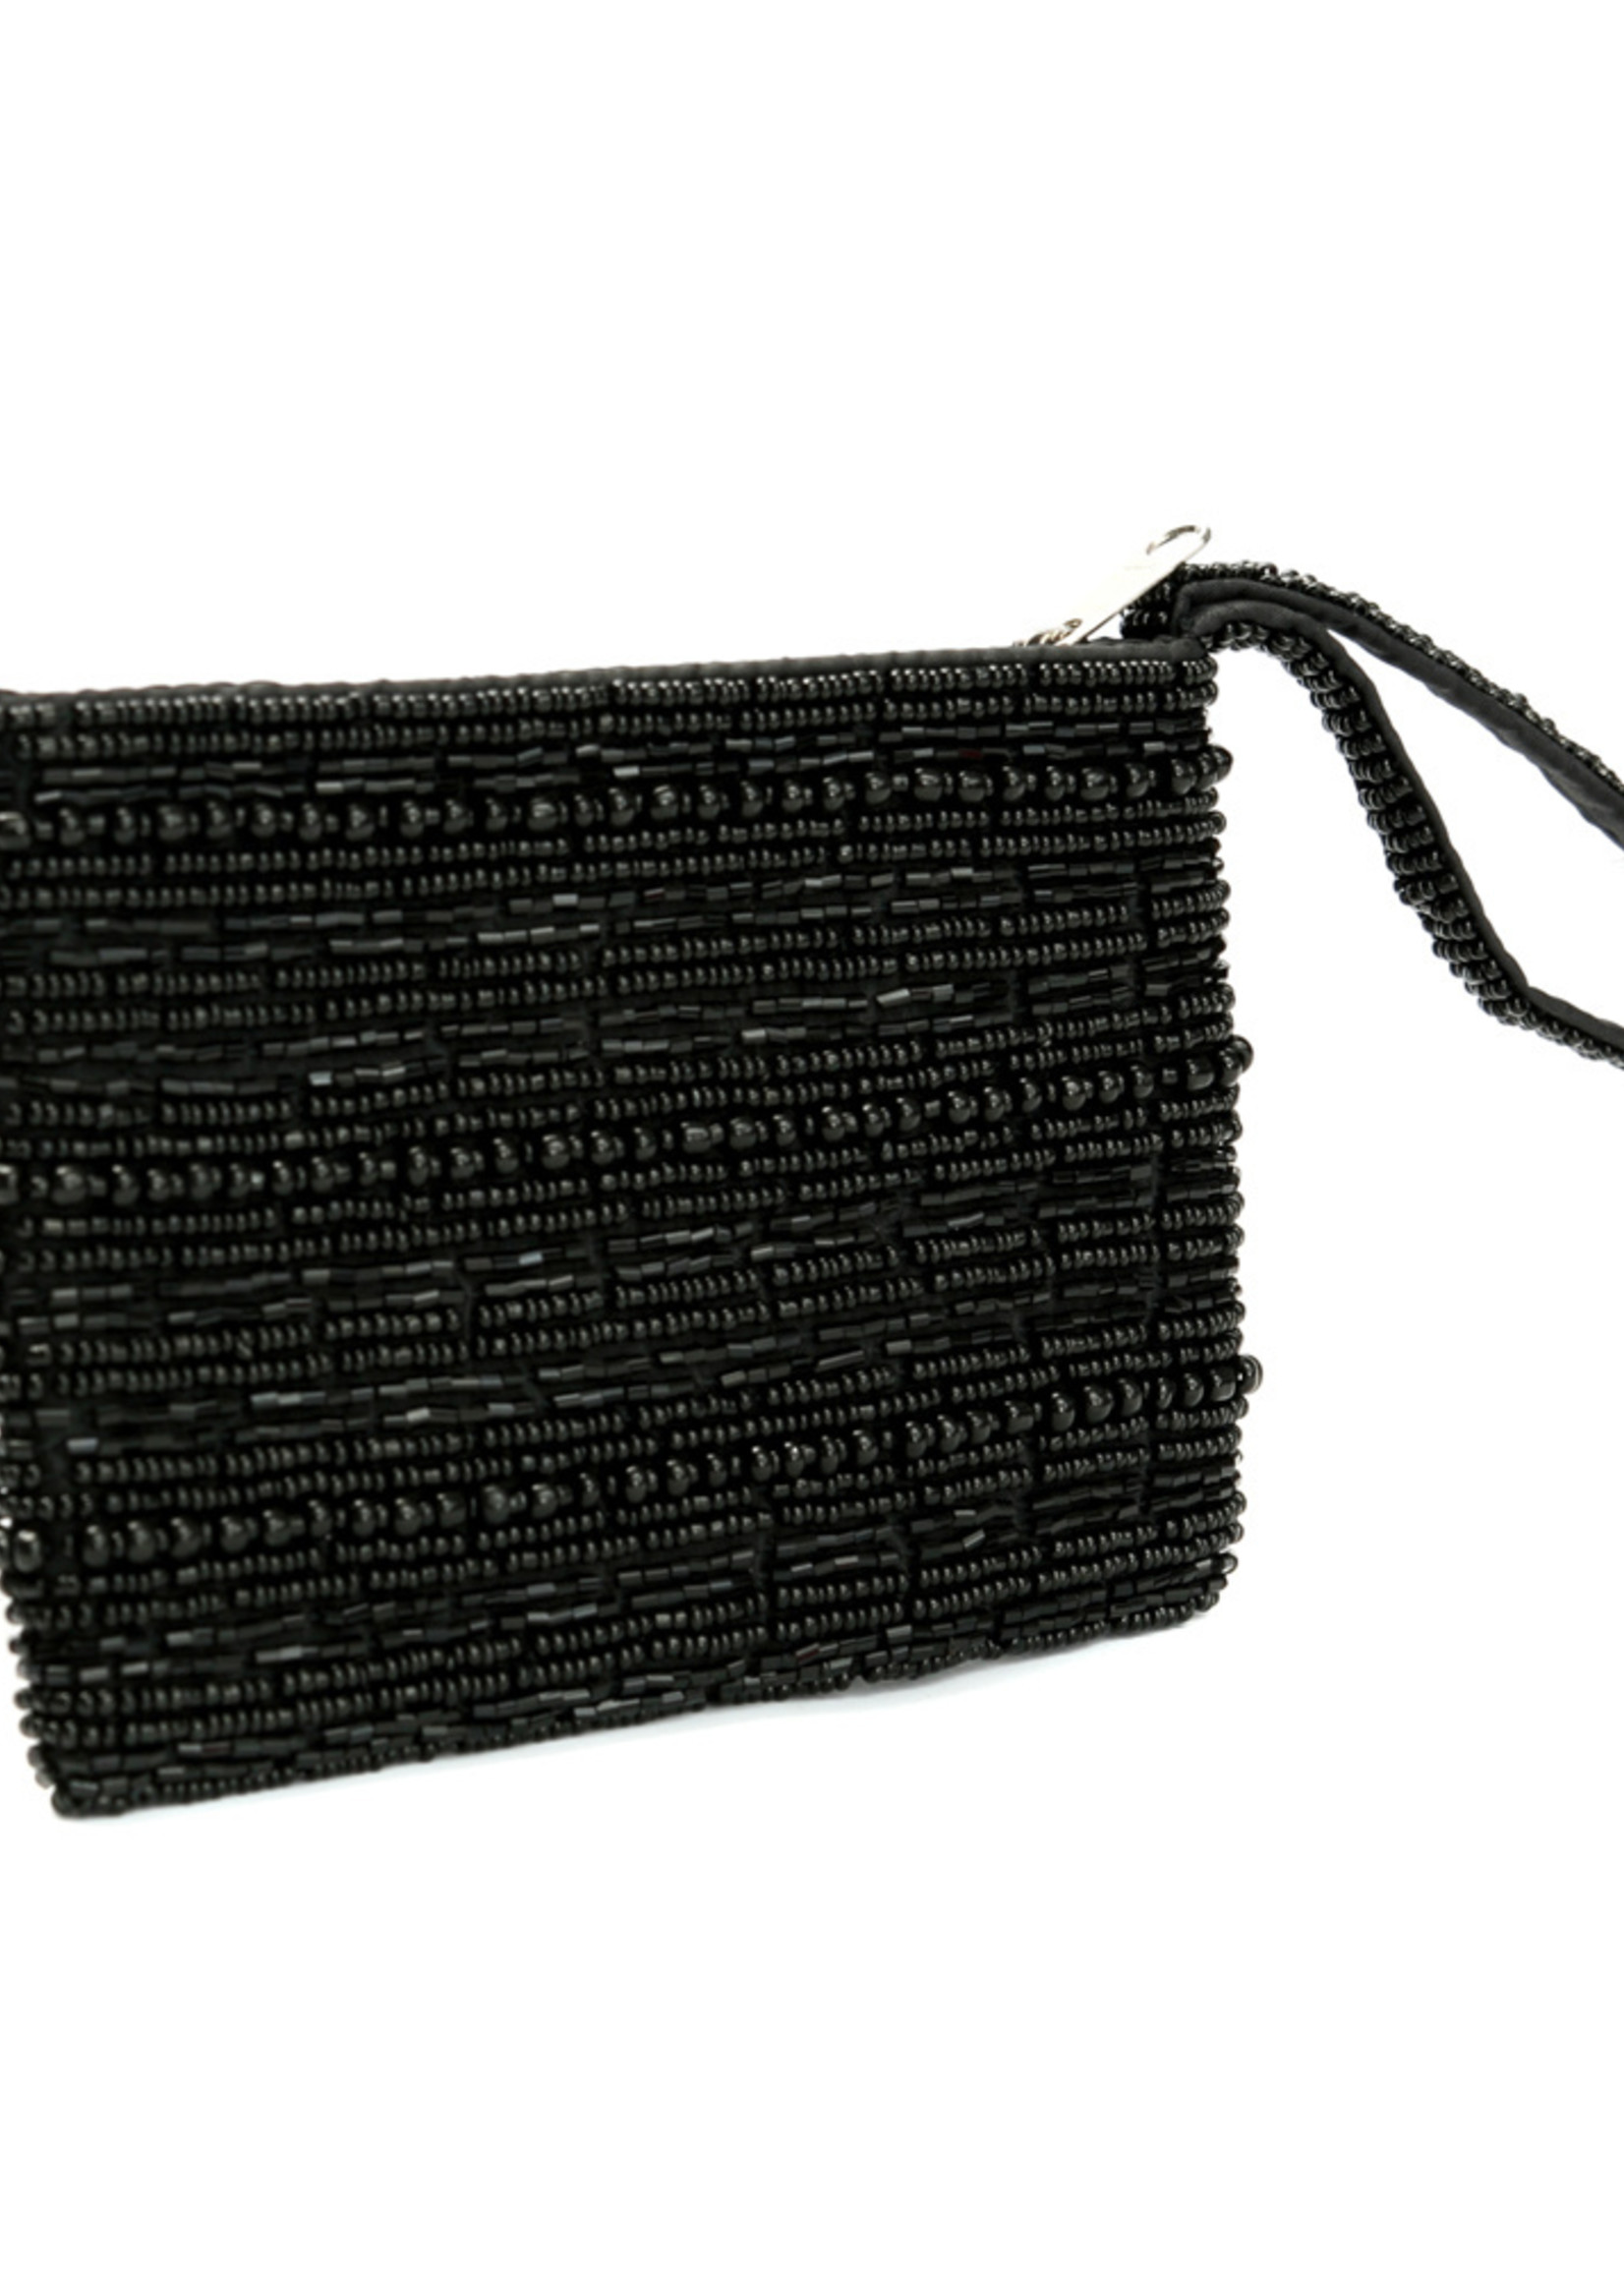 The Black Beaded Wallet